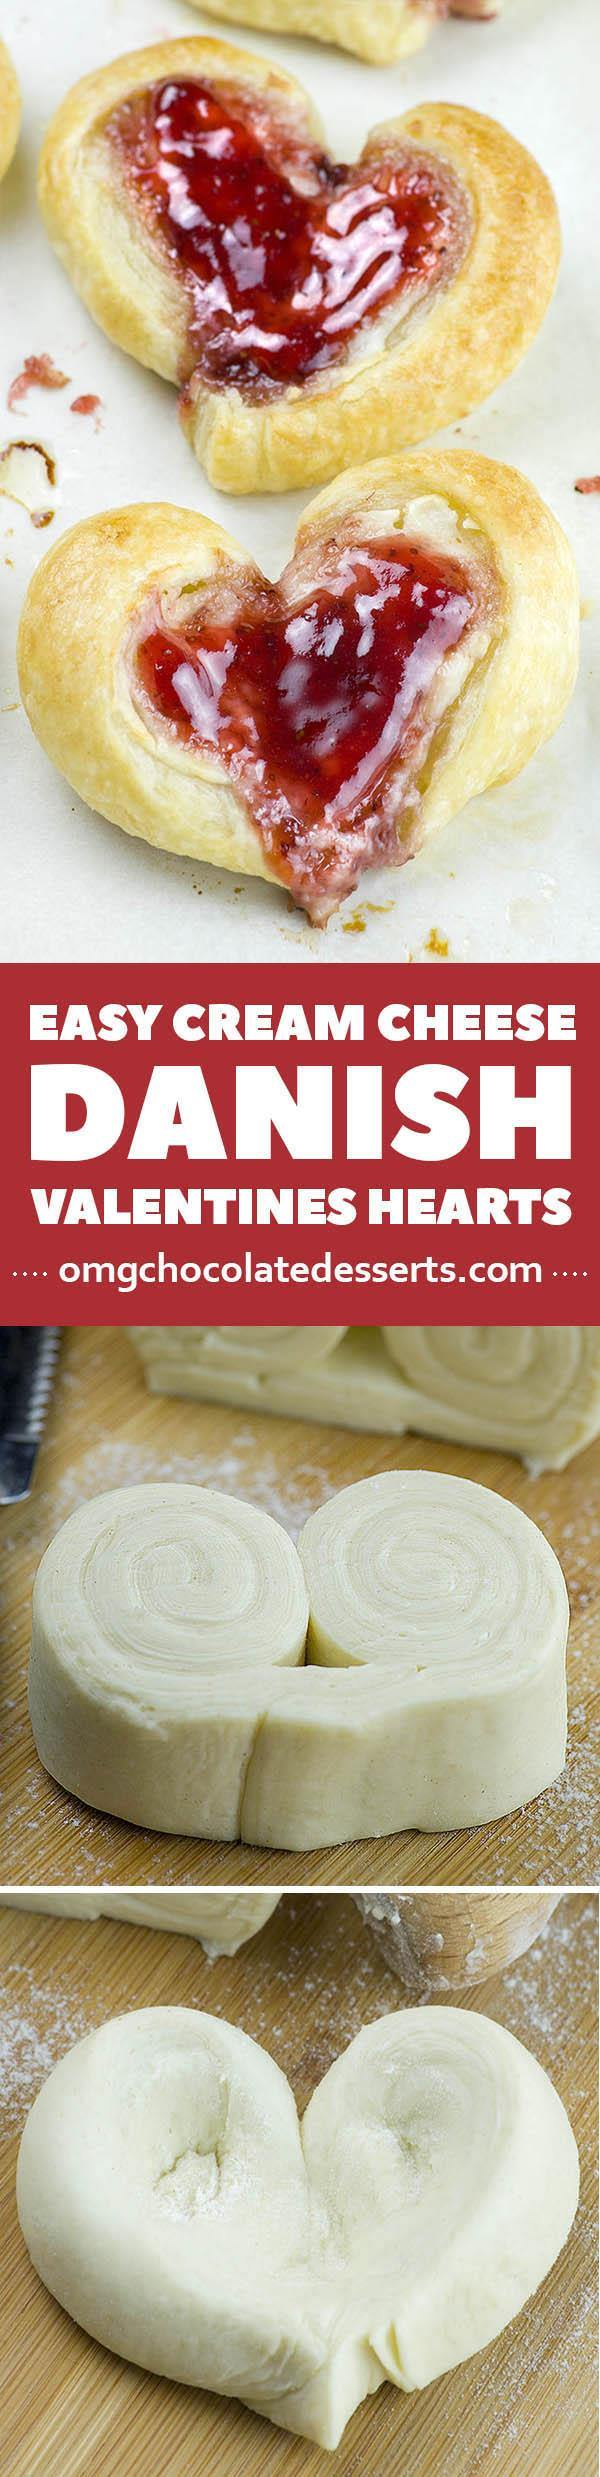 These adorable Easy Cream Cheese Danish Valentine's Hearts are perfect Valentines breakfast idea.